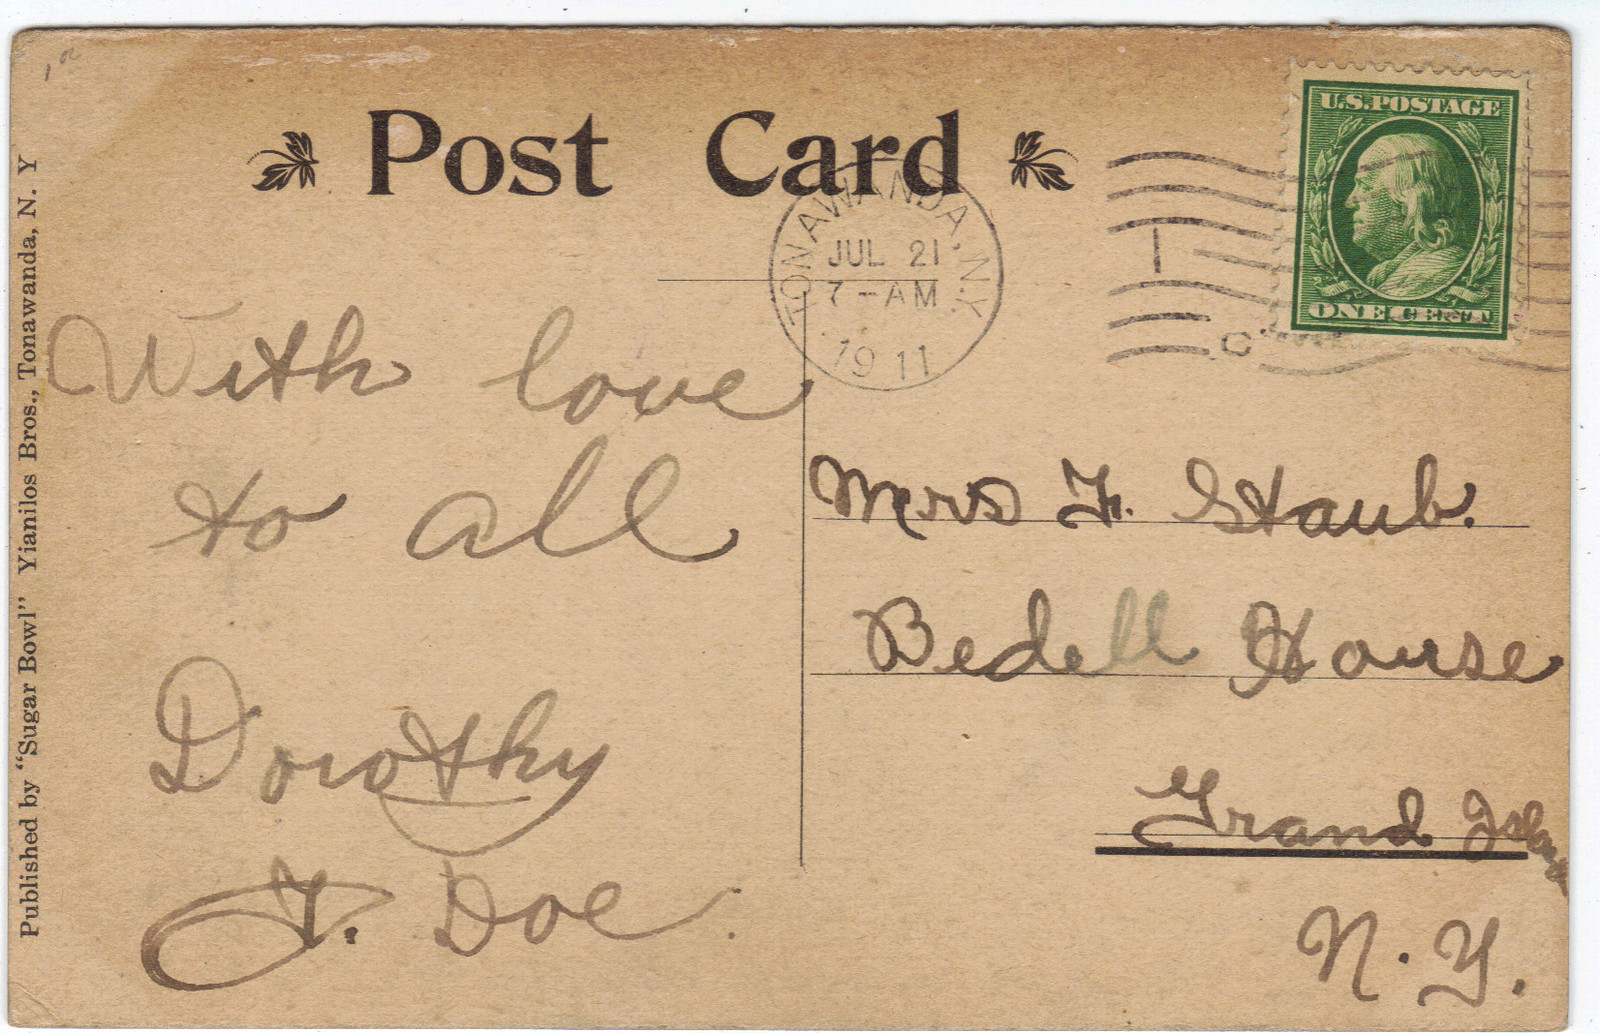 New Sugar Bowl, postcard back (1911-07-21).jpg